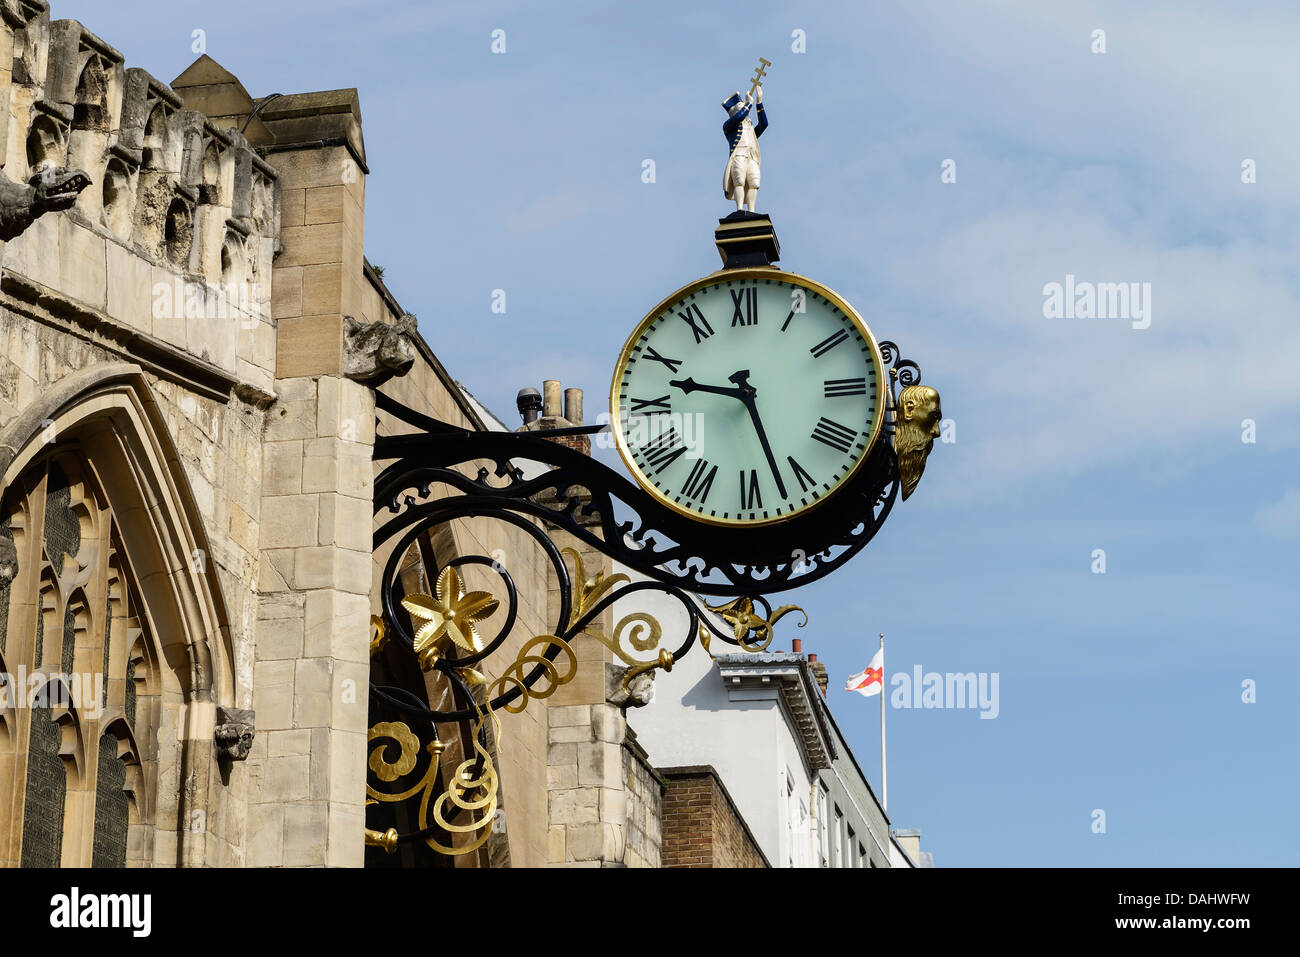 The large clock attached to St Martin le Grand church on Coney Street in York city centre UK - Stock Image